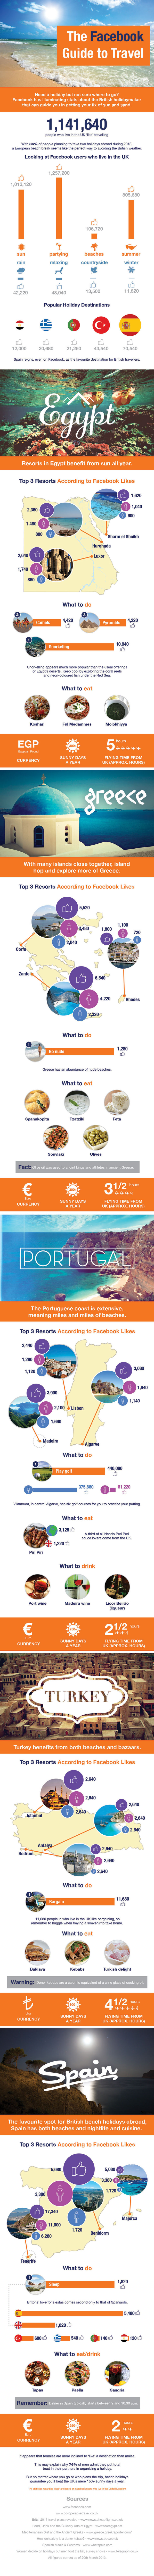 Facebook - An Ultimate Travel Guide for Visitors Infographic